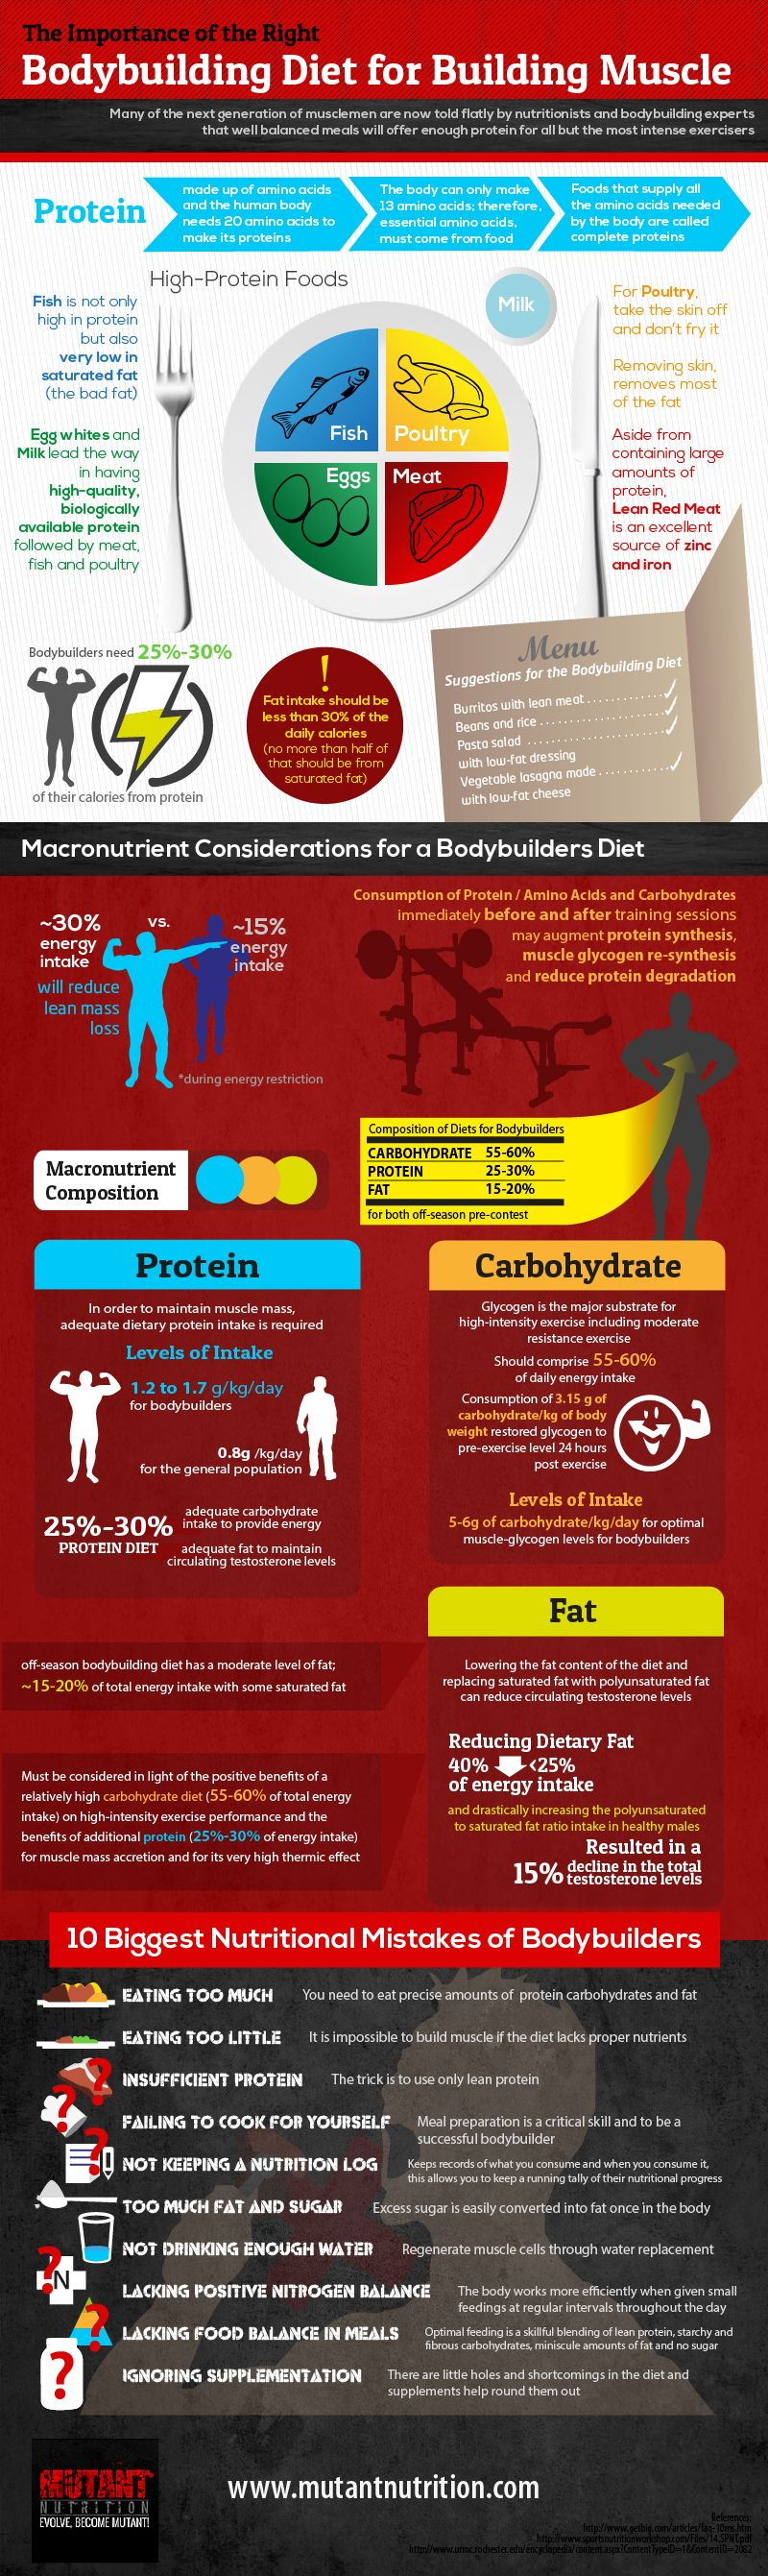 This is an infographic on the importance of the right bodybuilding diet for building muscle. Protein is made up of amino acids and the human body needs 20 amino acids to make its proteins.